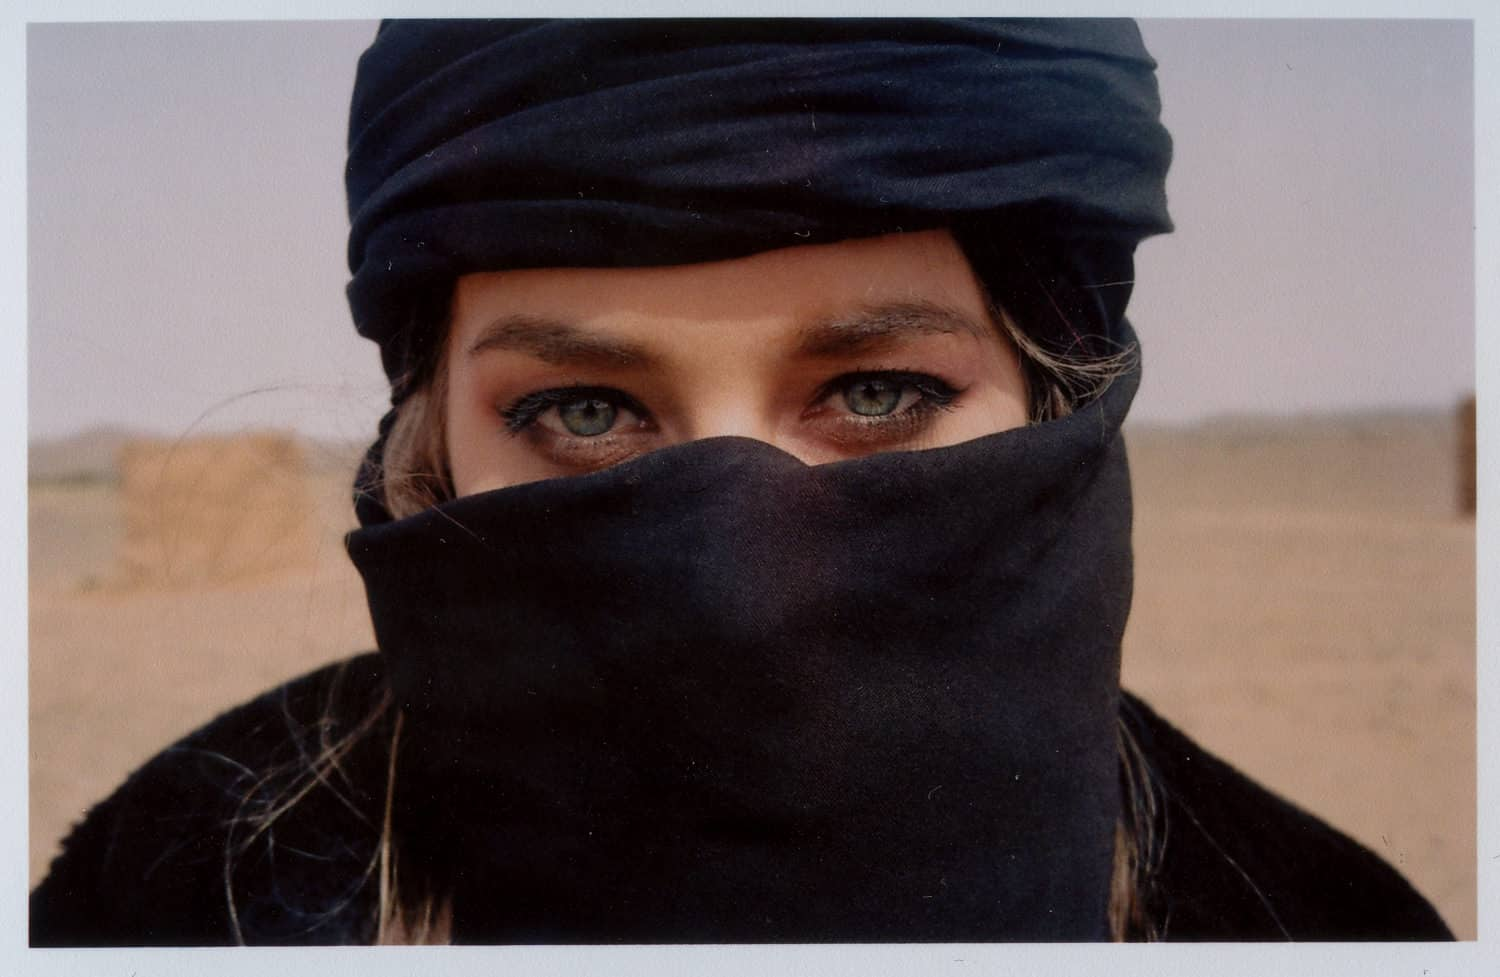 the eyes of a girl with a burka